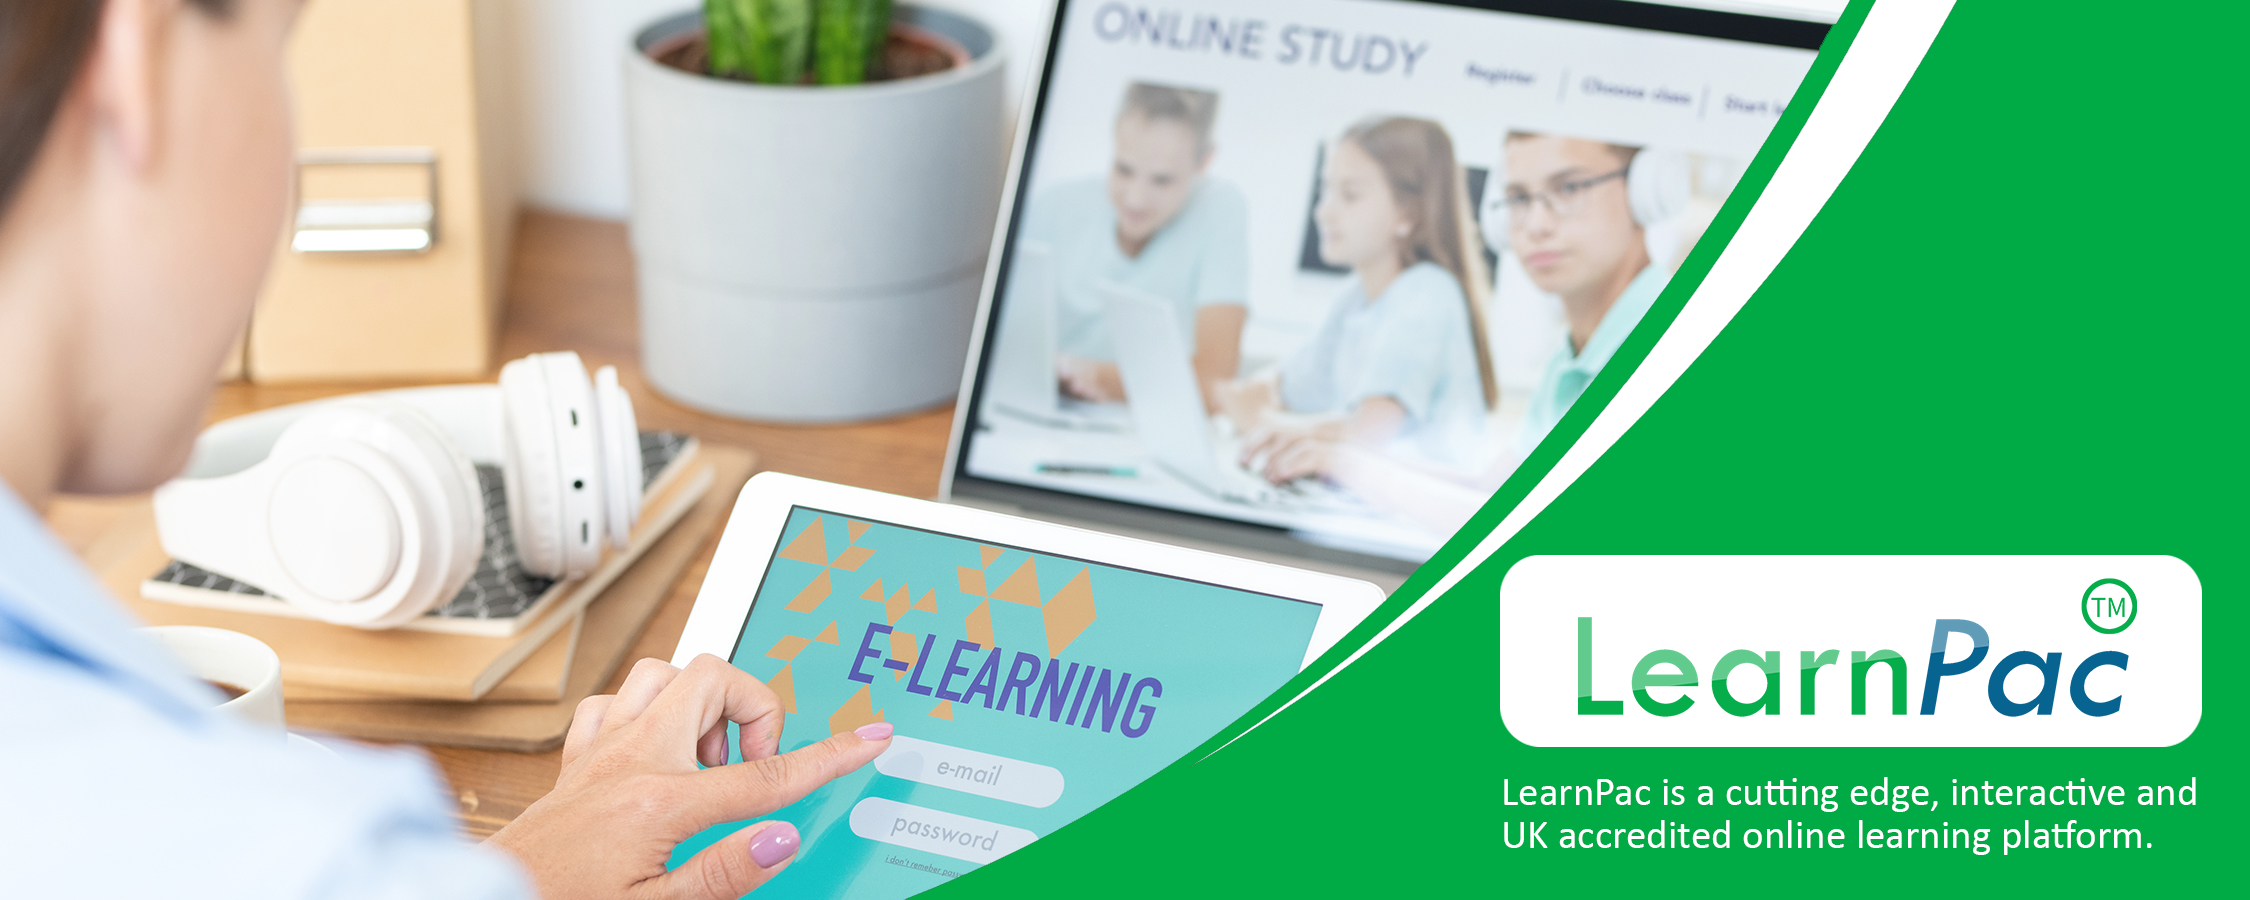 The Cloud and Business Training - Online Learning Courses - E-Learning Courses - LearnPac Systems UK -